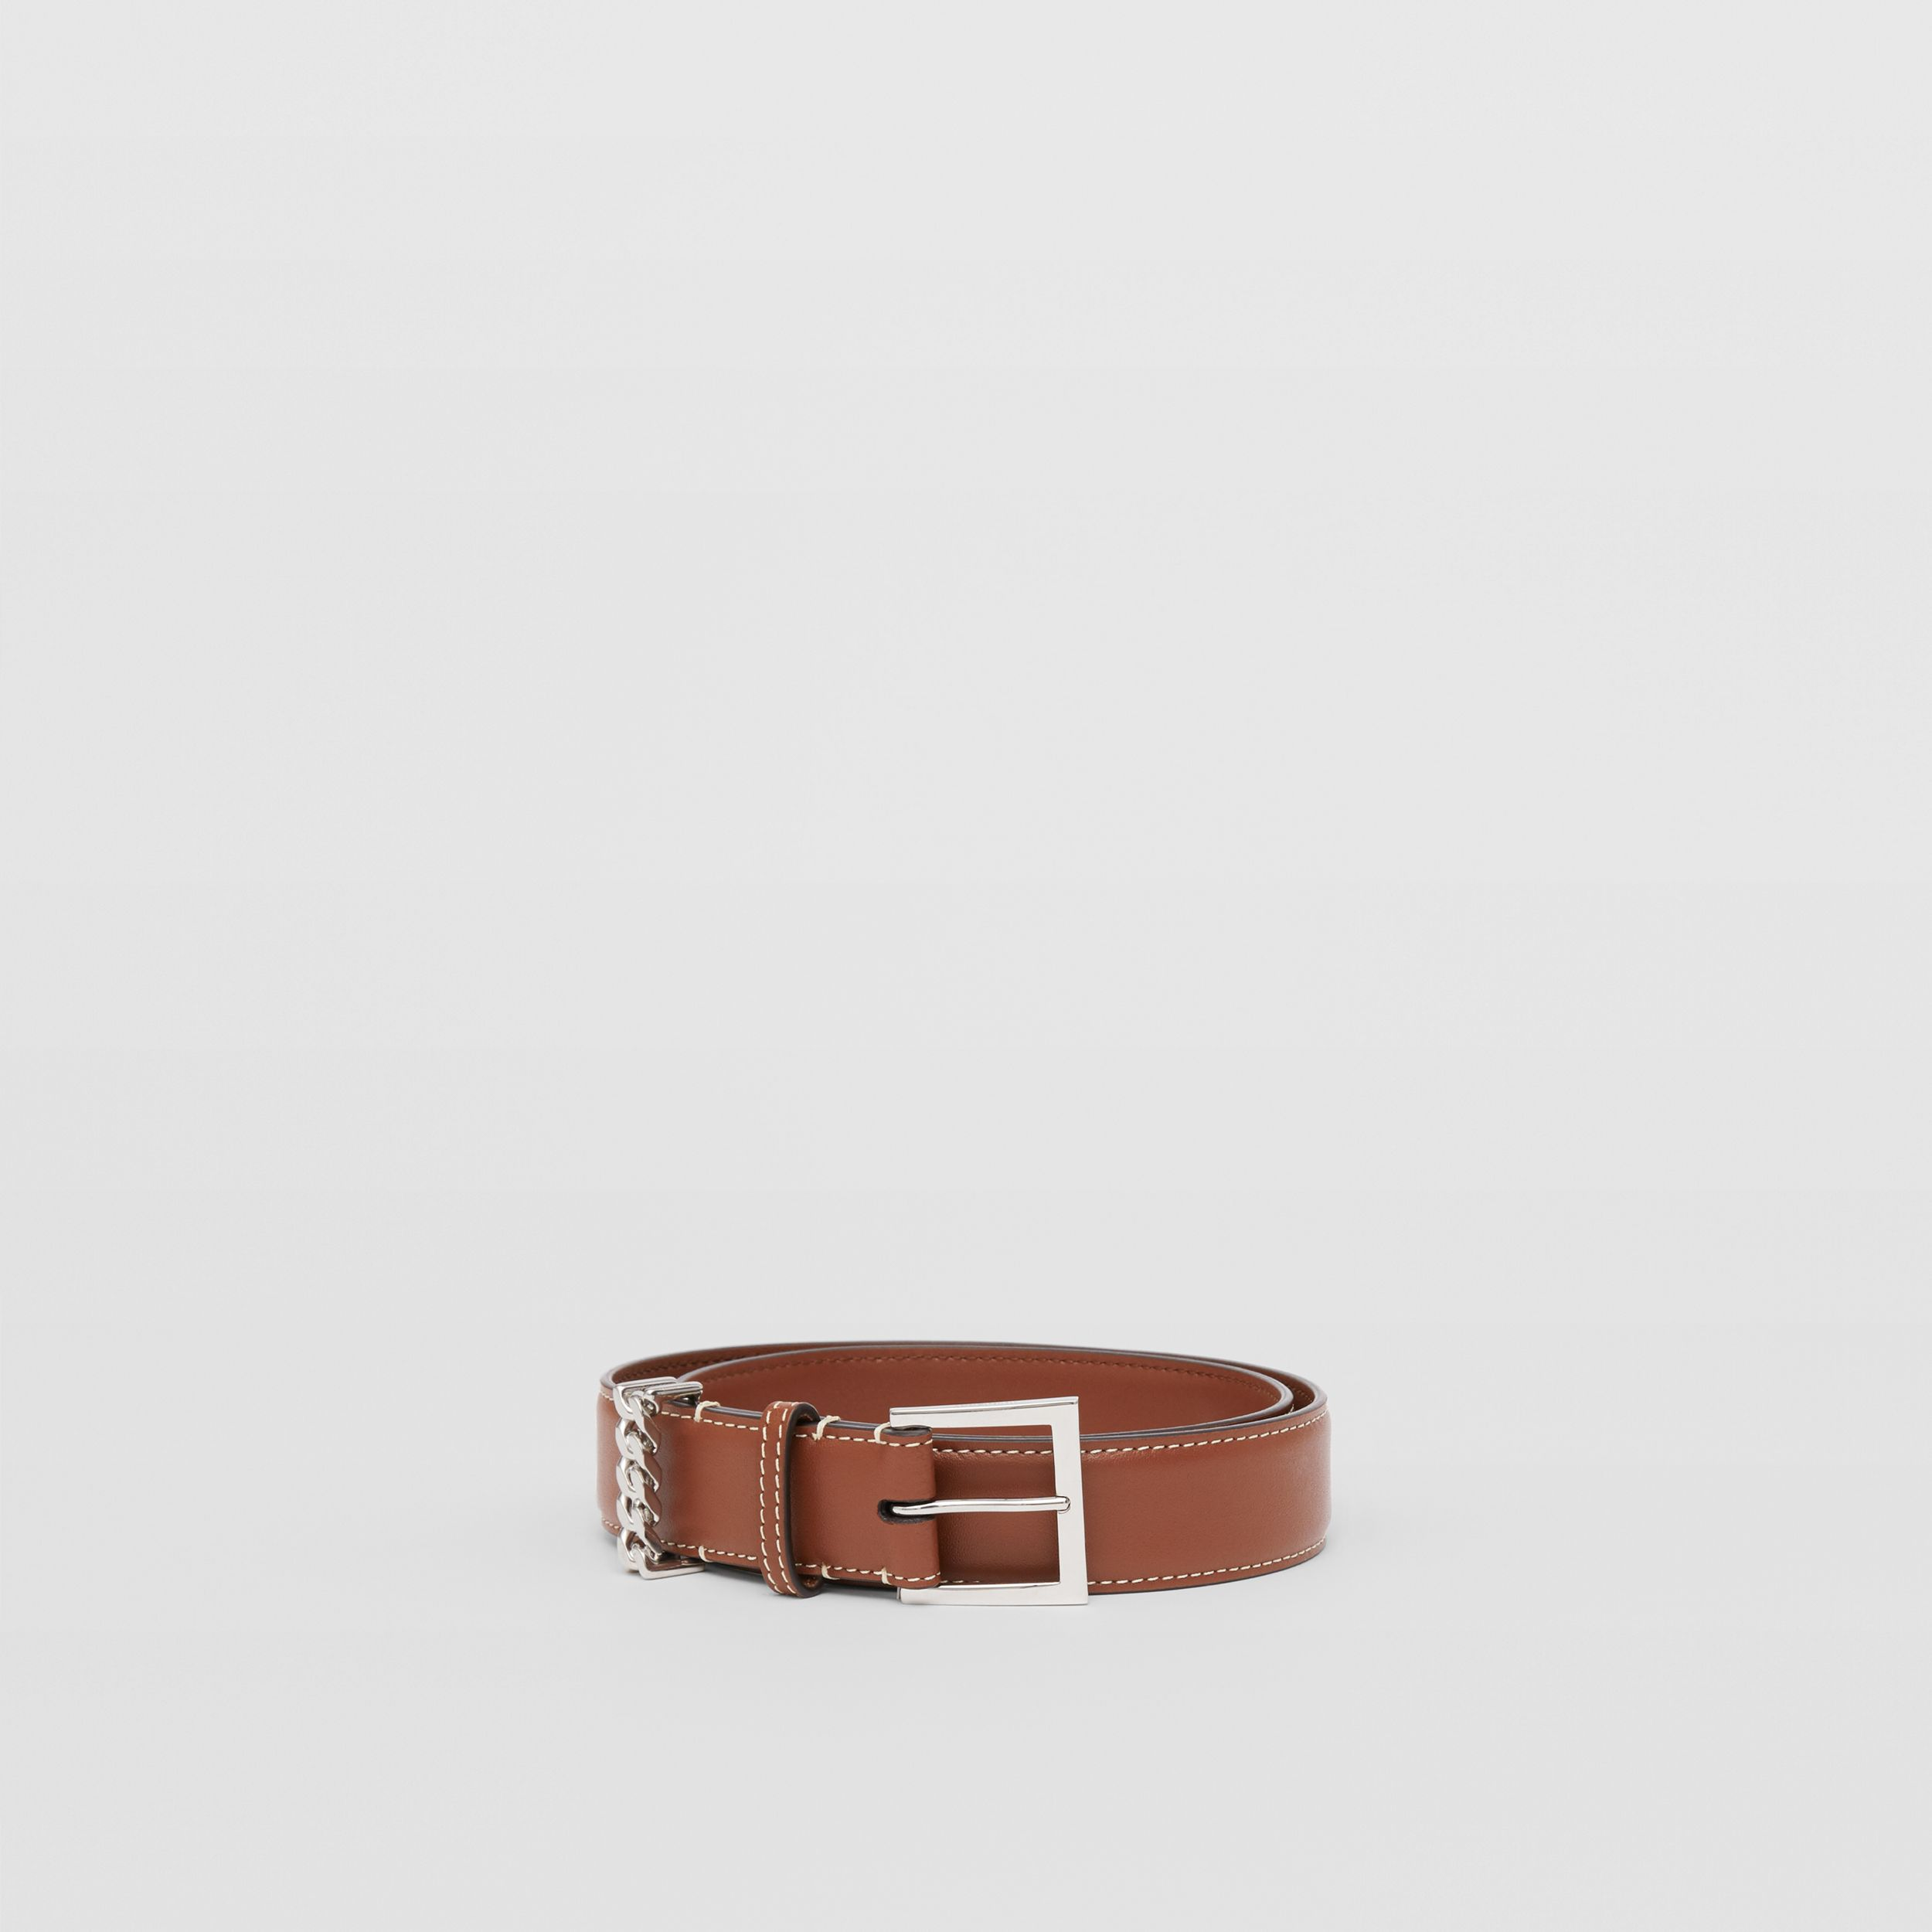 Chain Detail Topstitched Leather Belt in Tan/ecru - Women | Burberry Hong Kong S.A.R. - 4